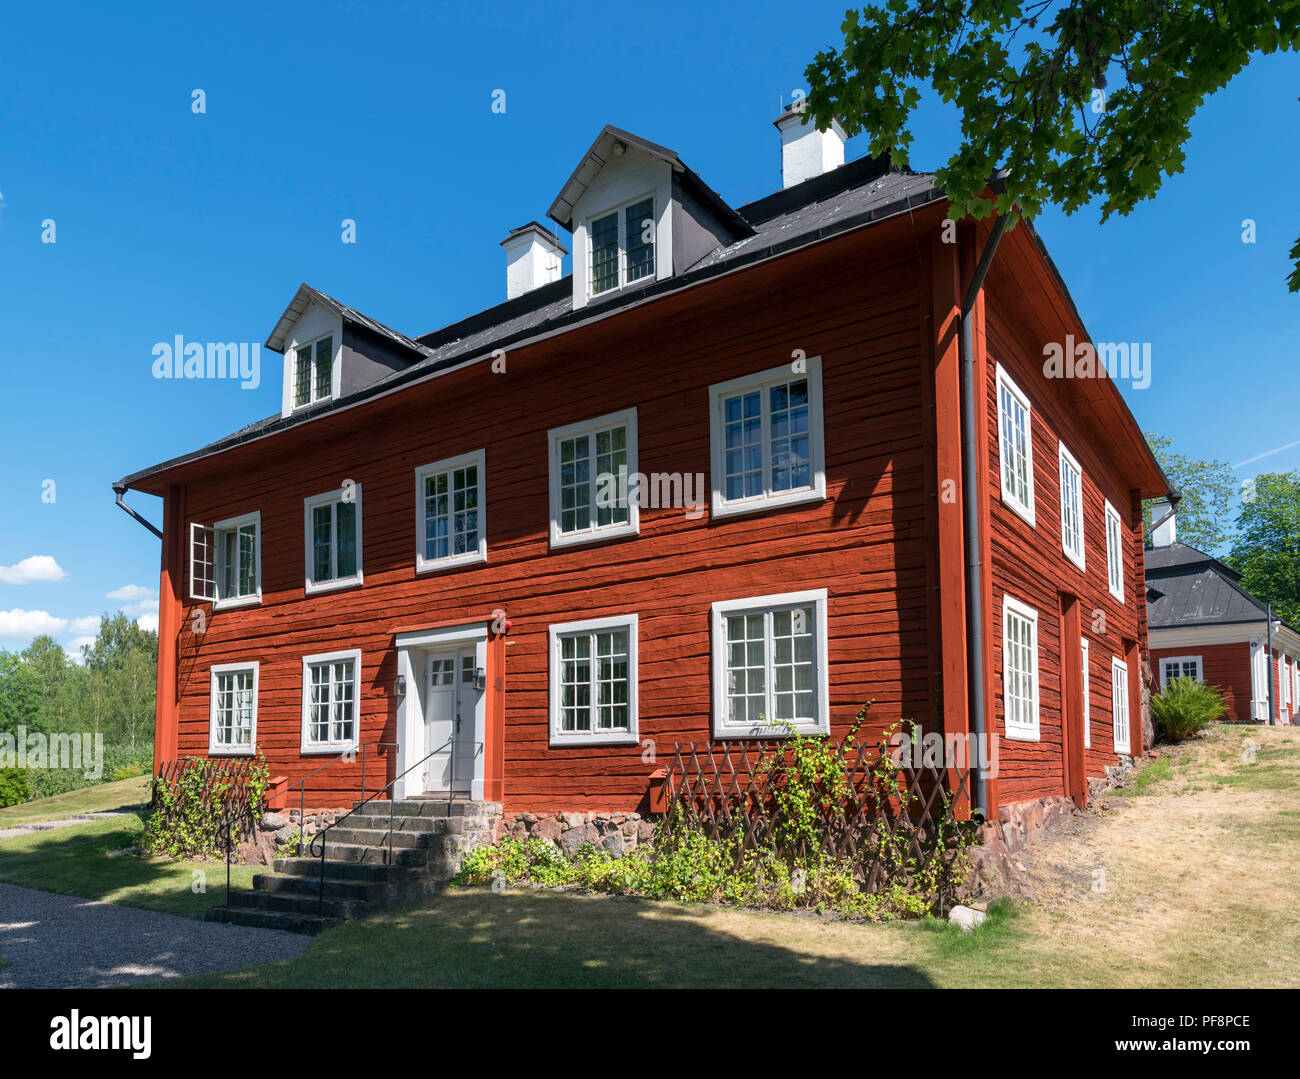 Traditional red house, Sweden. The late 18thC West Wing of the Manor House, Engelsbergs Bruk (Engelsberg Ironworks), Ängelsberg, Västmanland, Sweden - Stock Image